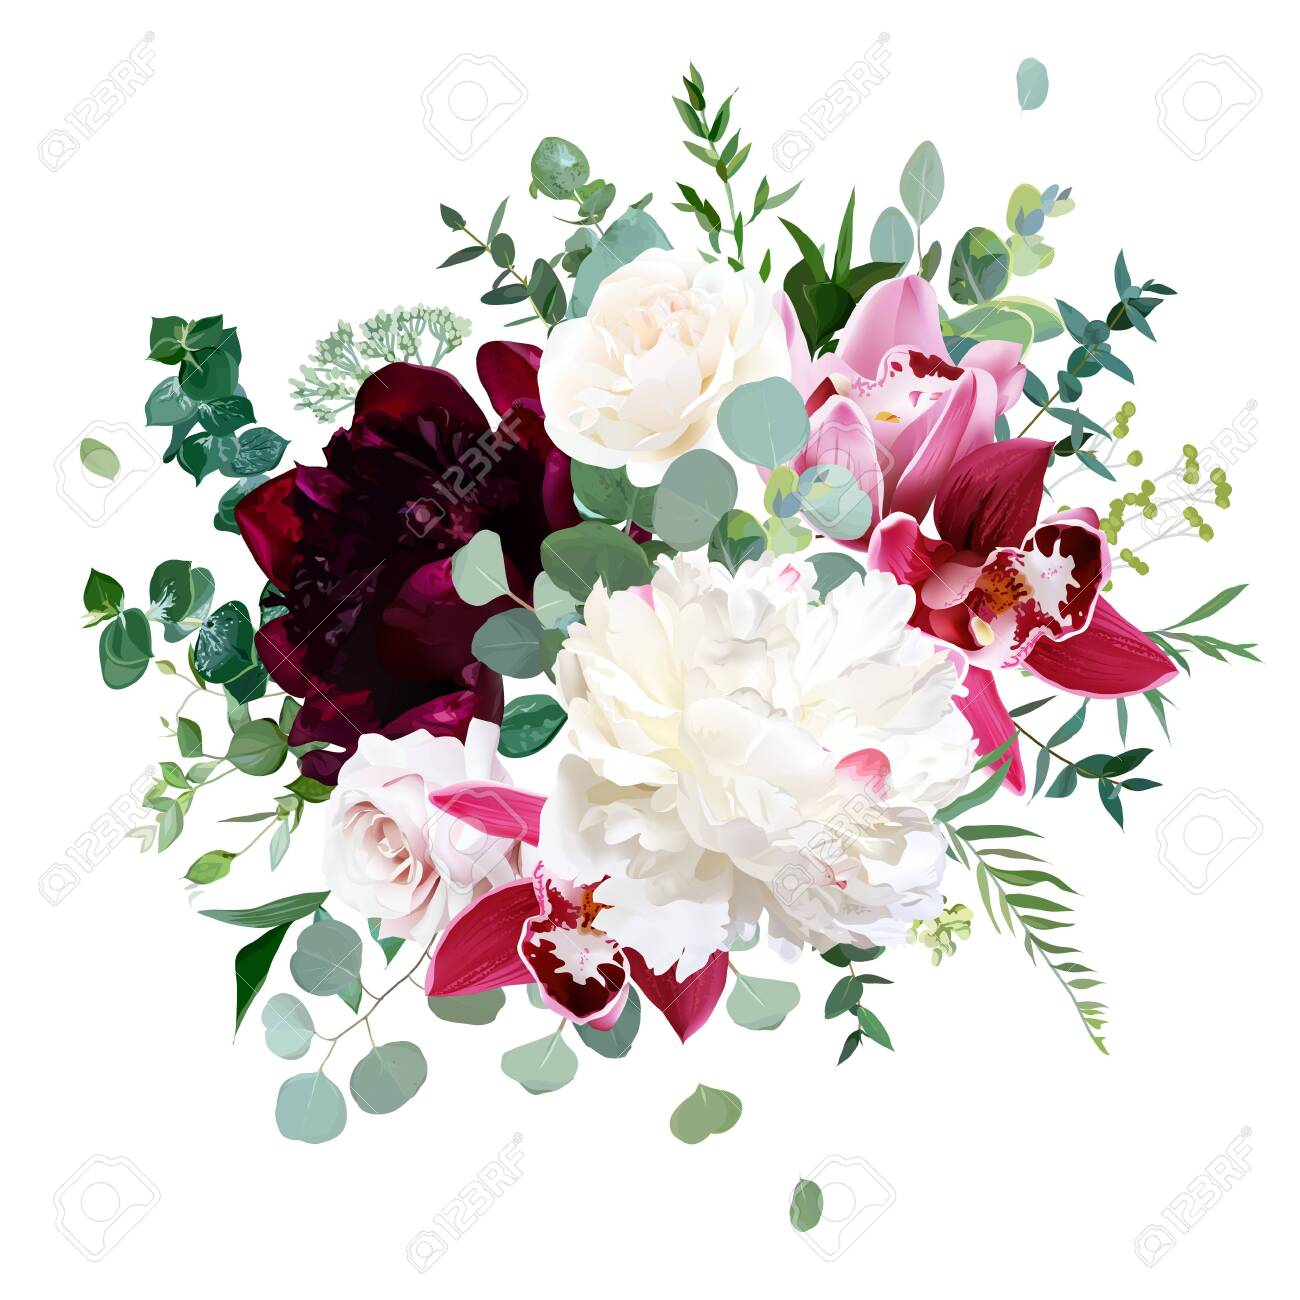 Elegant Floral Vector Bouquet With White And Burgundy Red Peony Royalty Free Cliparts Vectors And Stock Illustration Image 138584267